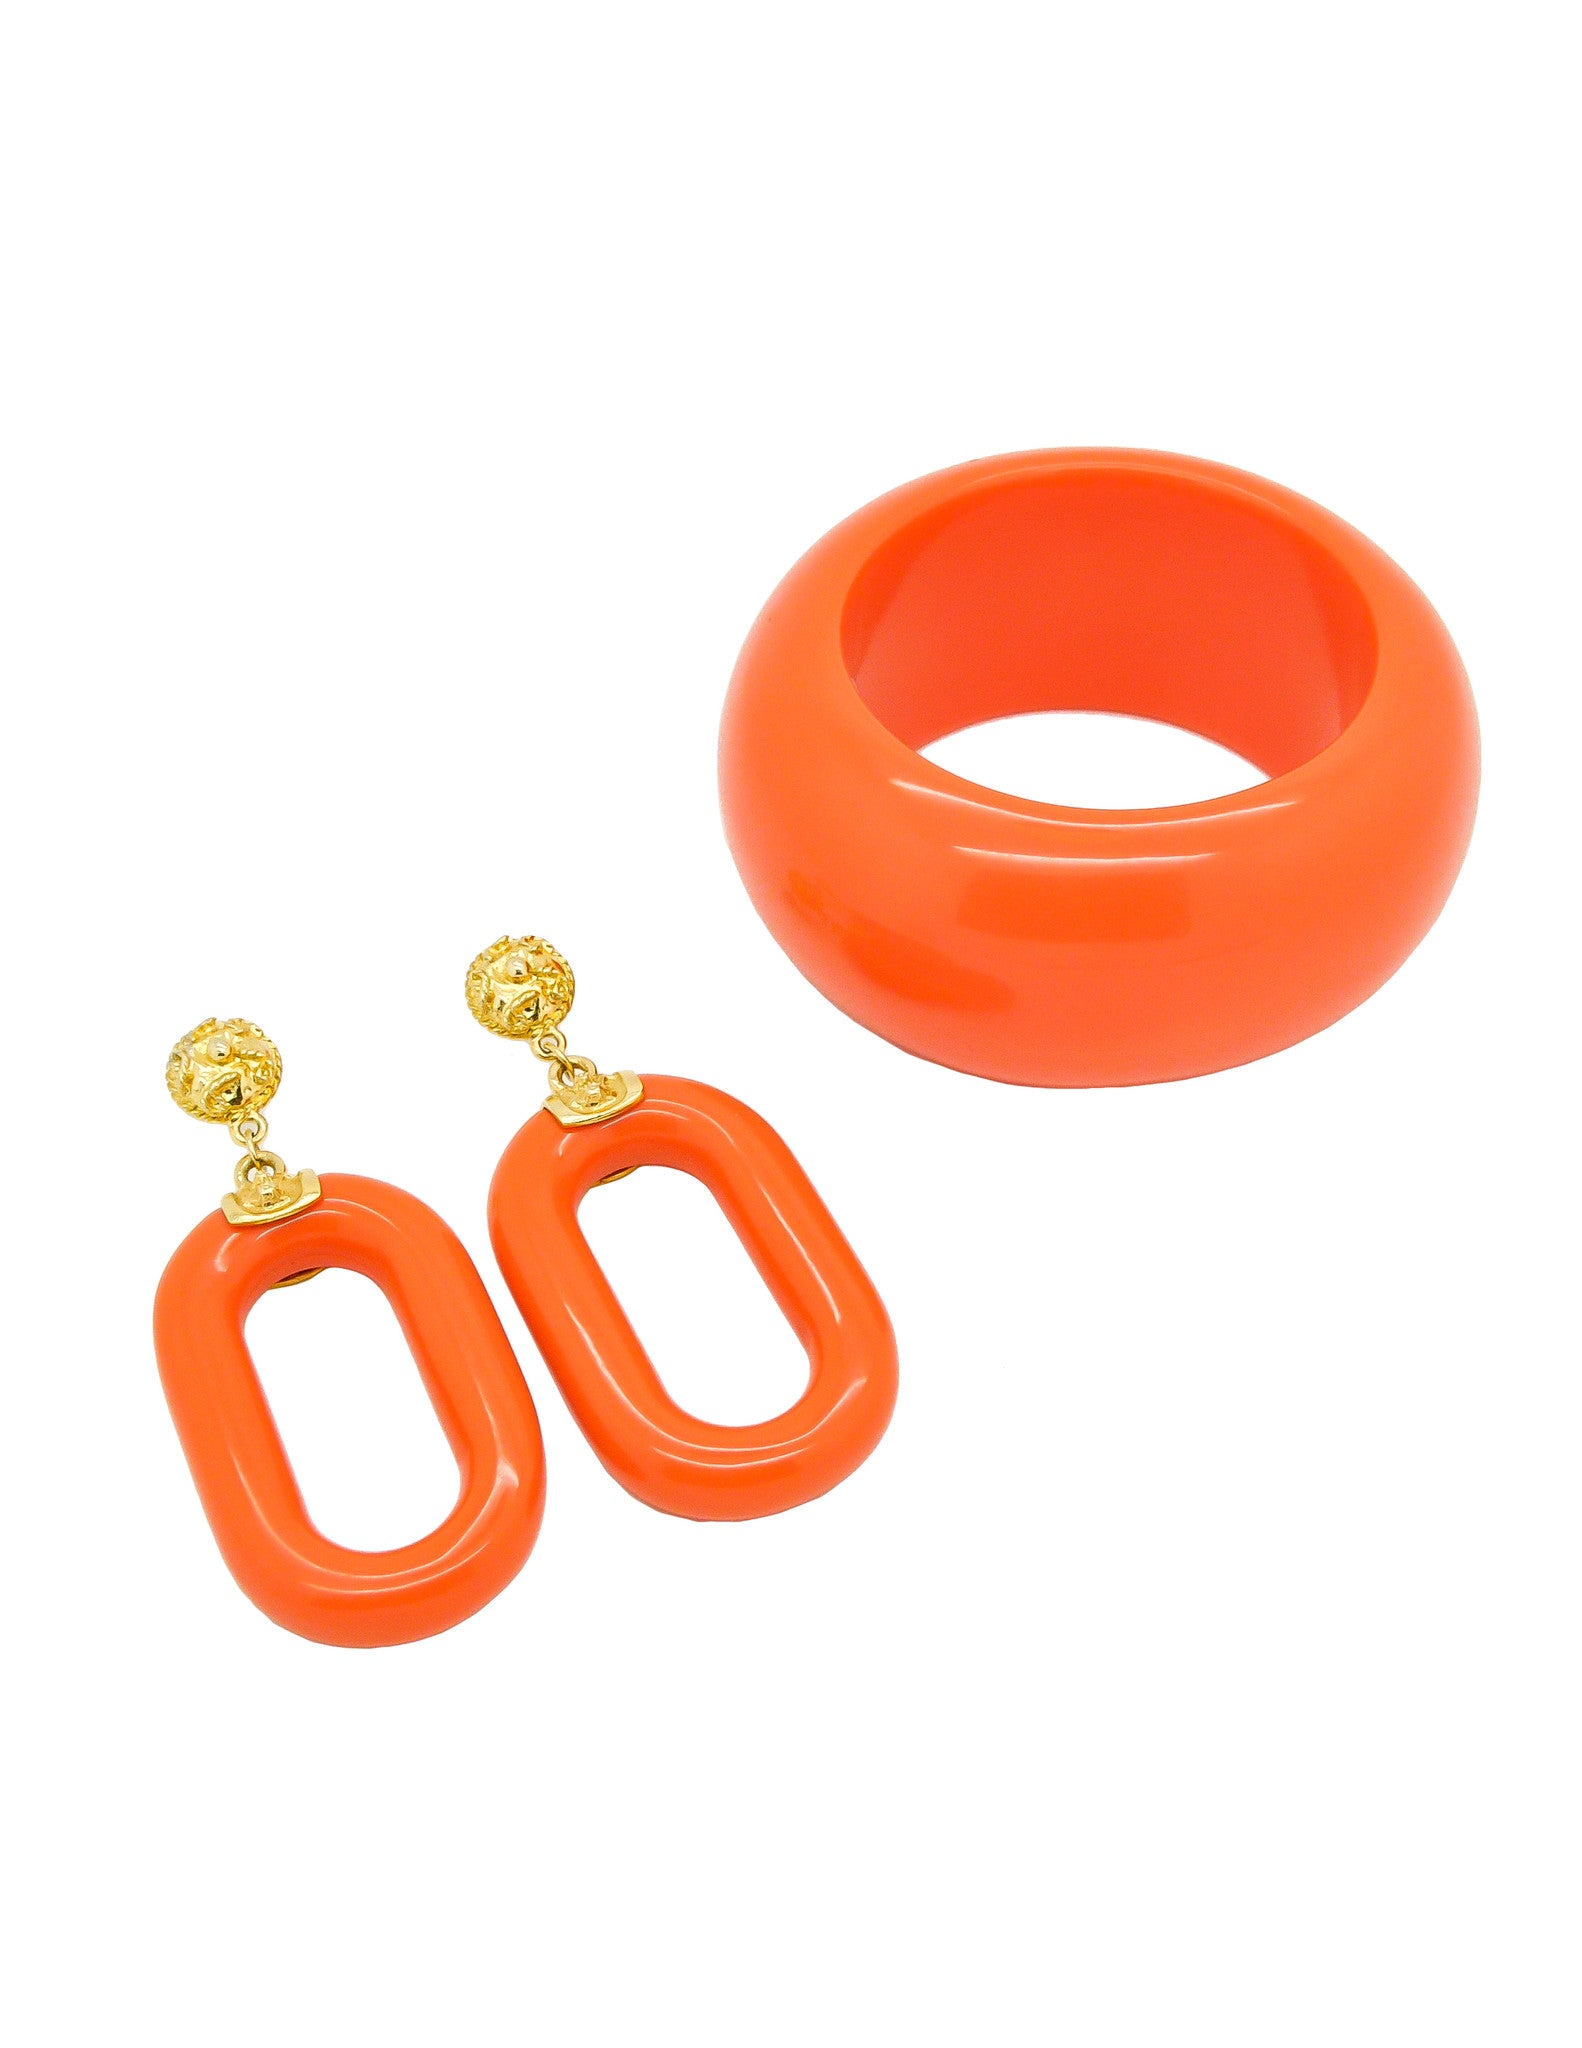 Kenneth Jay Lane Vintage Orange Bracelet and Earring Set - Amarcord Vintage Fashion  - 1